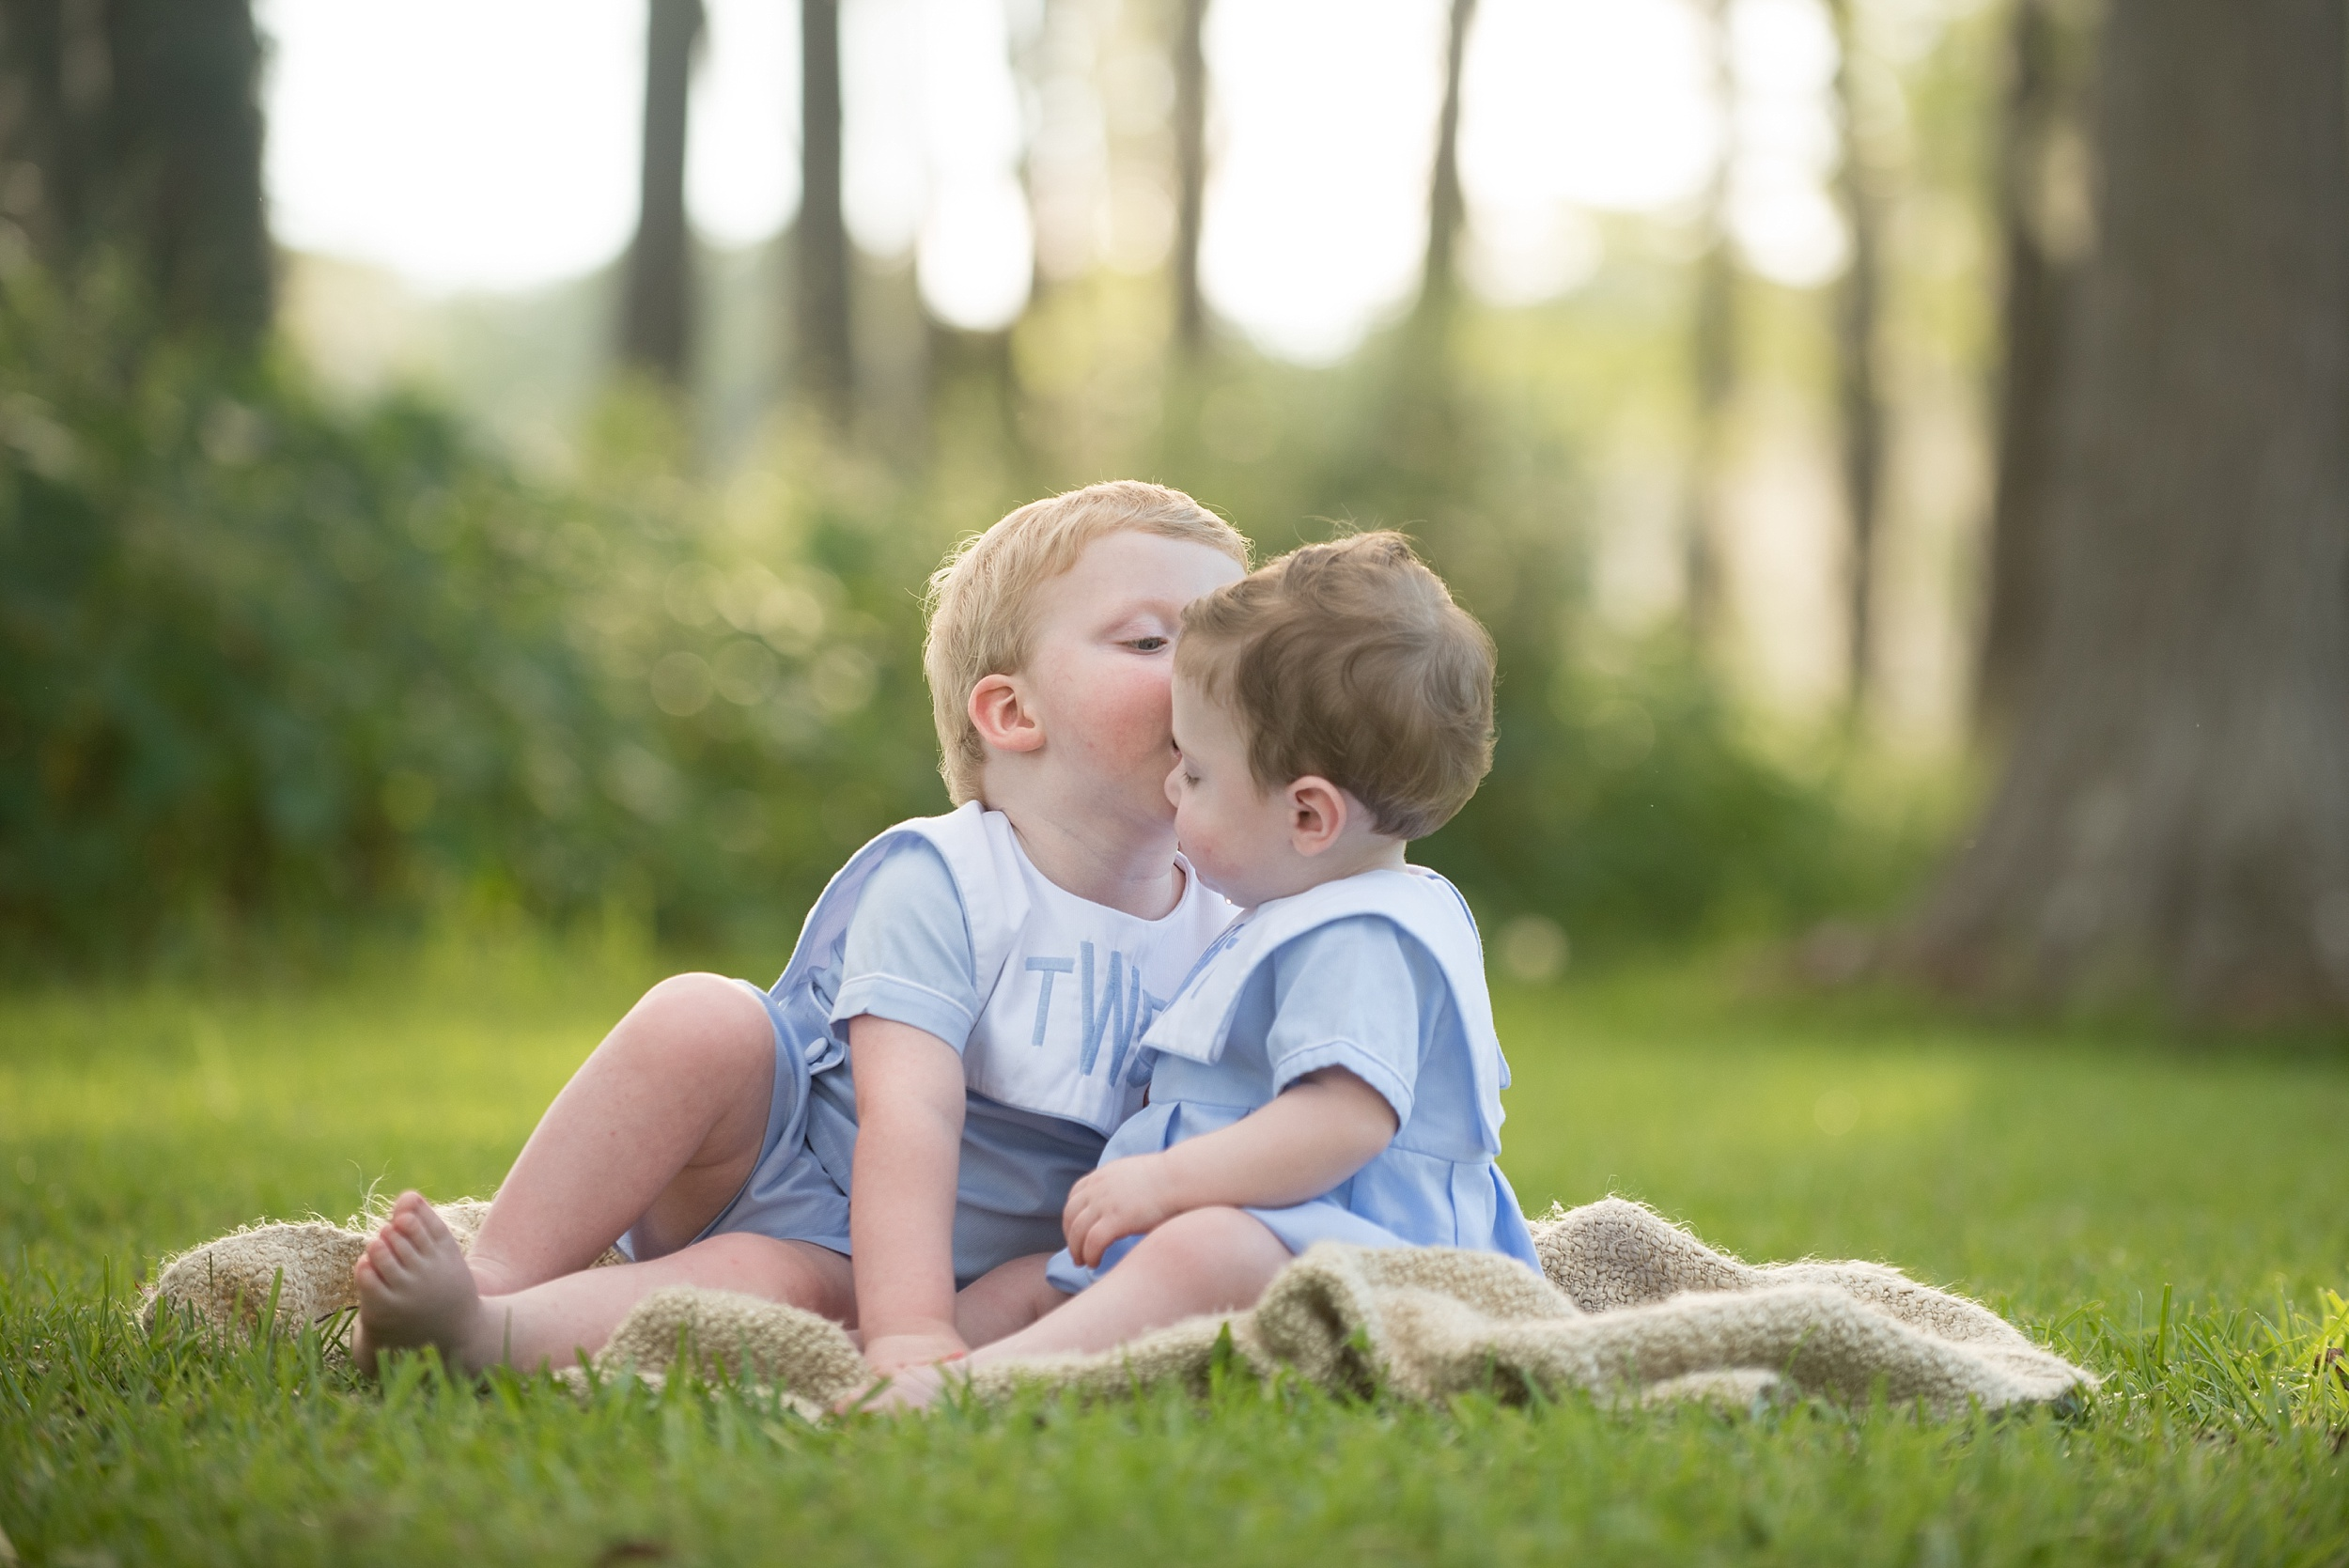 big brother kisses little brother in front of cypress trees